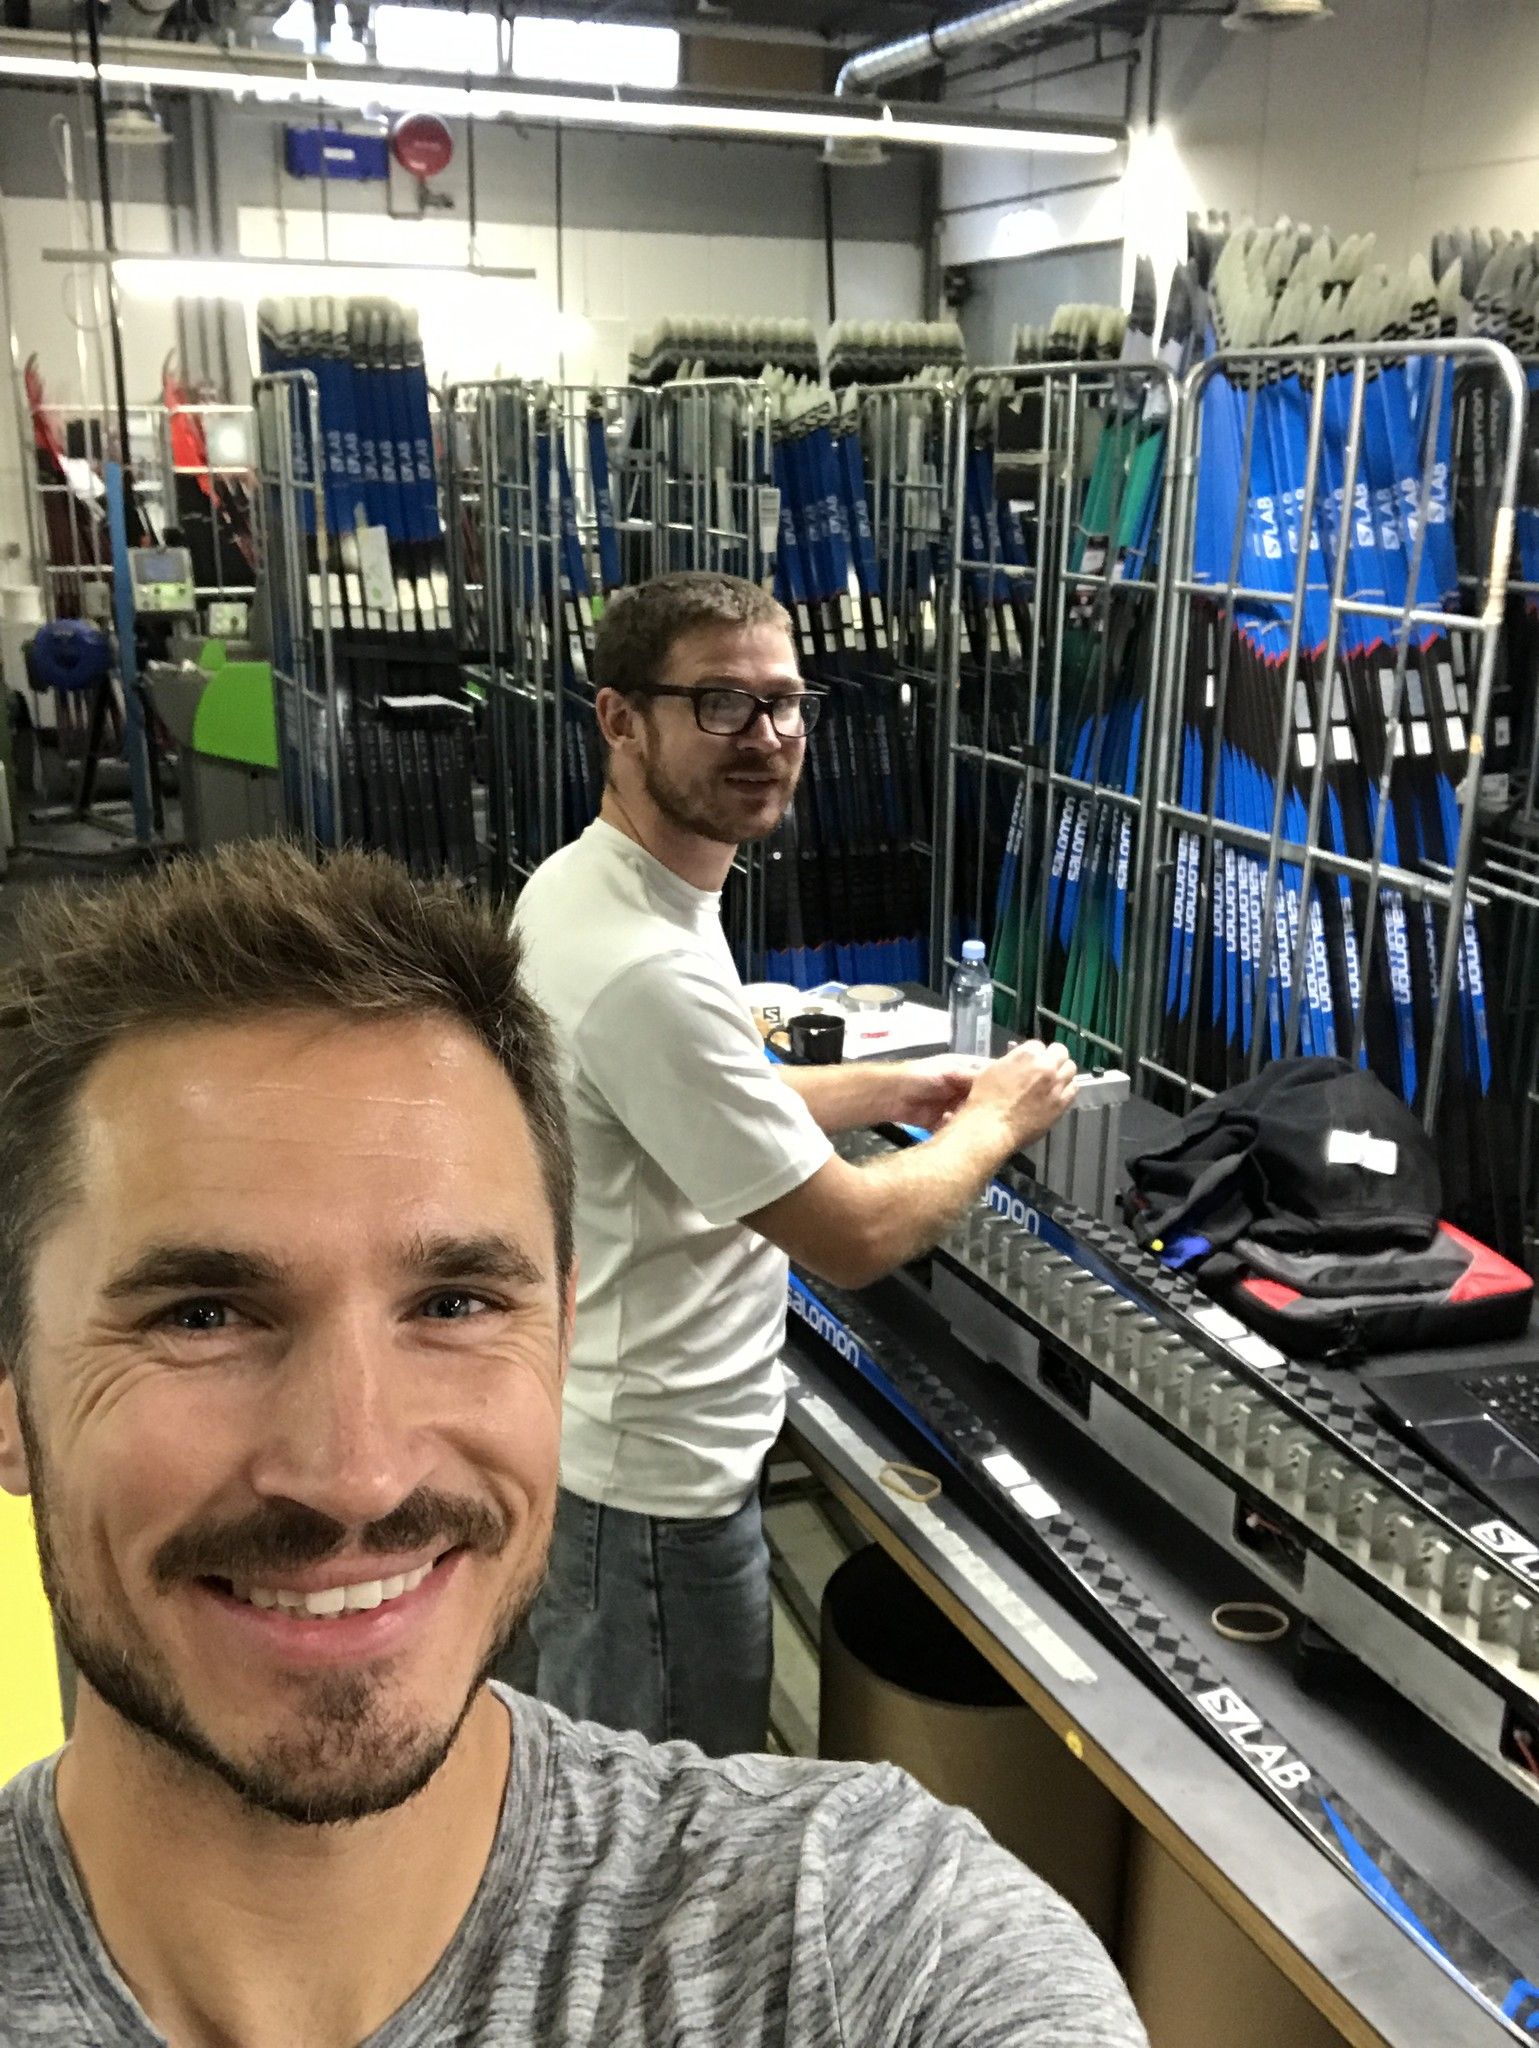 Salomonatomic ski picking recap pioneer midwest we were picking skis for both specific customers and general inventory for the shop josh and i would start sorting kilo skis of a certain model and length sciox Images